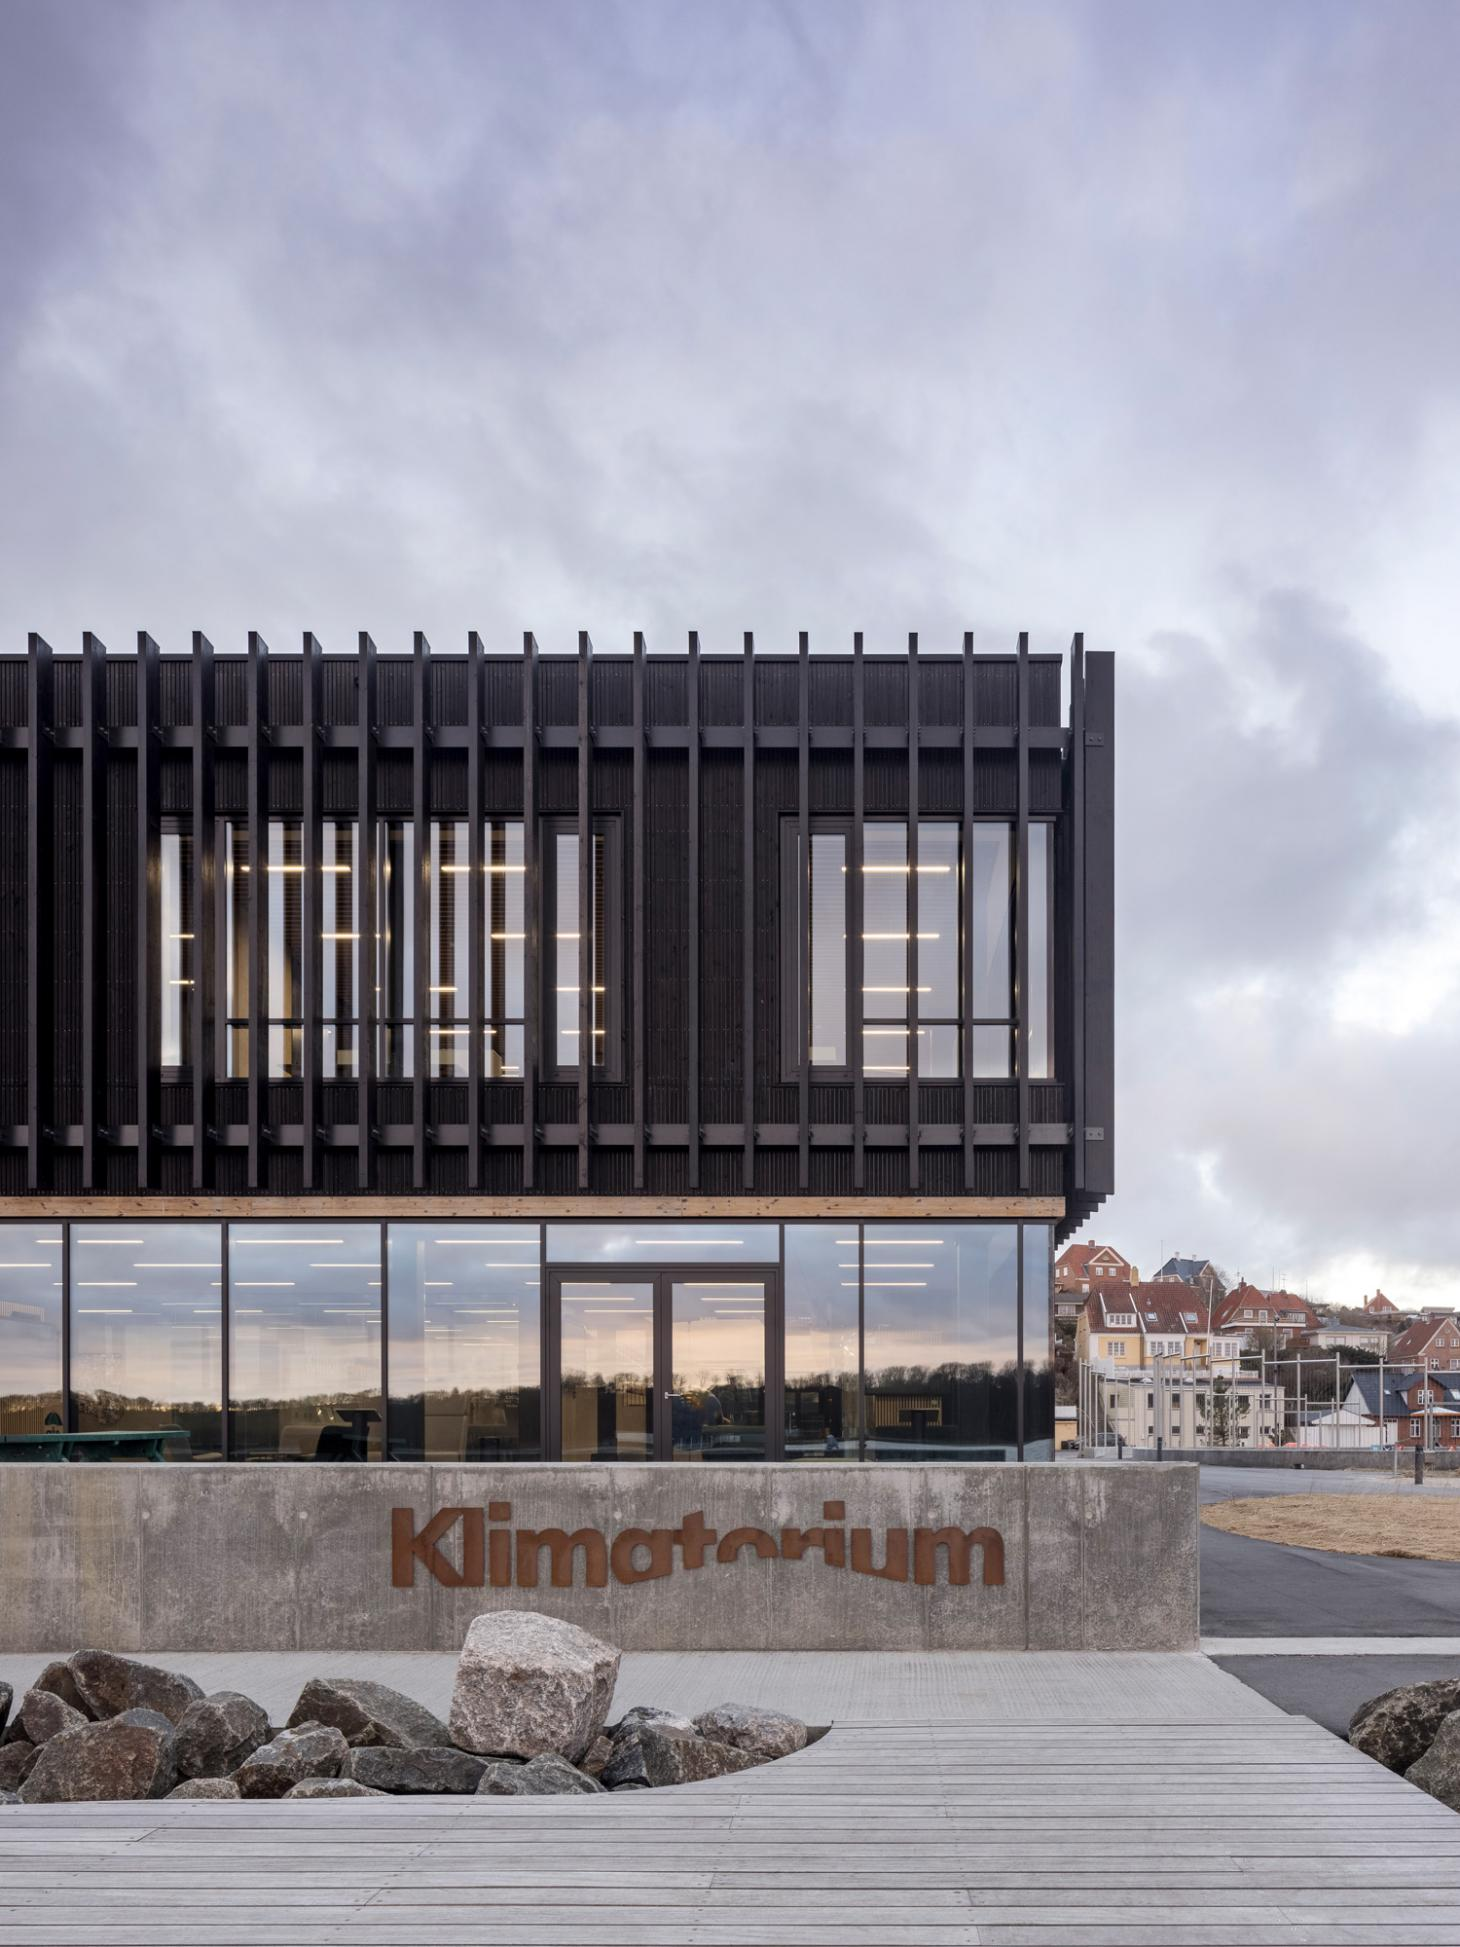 the entrance of the Lemvig Klimatorium is clad in timber as the building sits on a concrete plinth